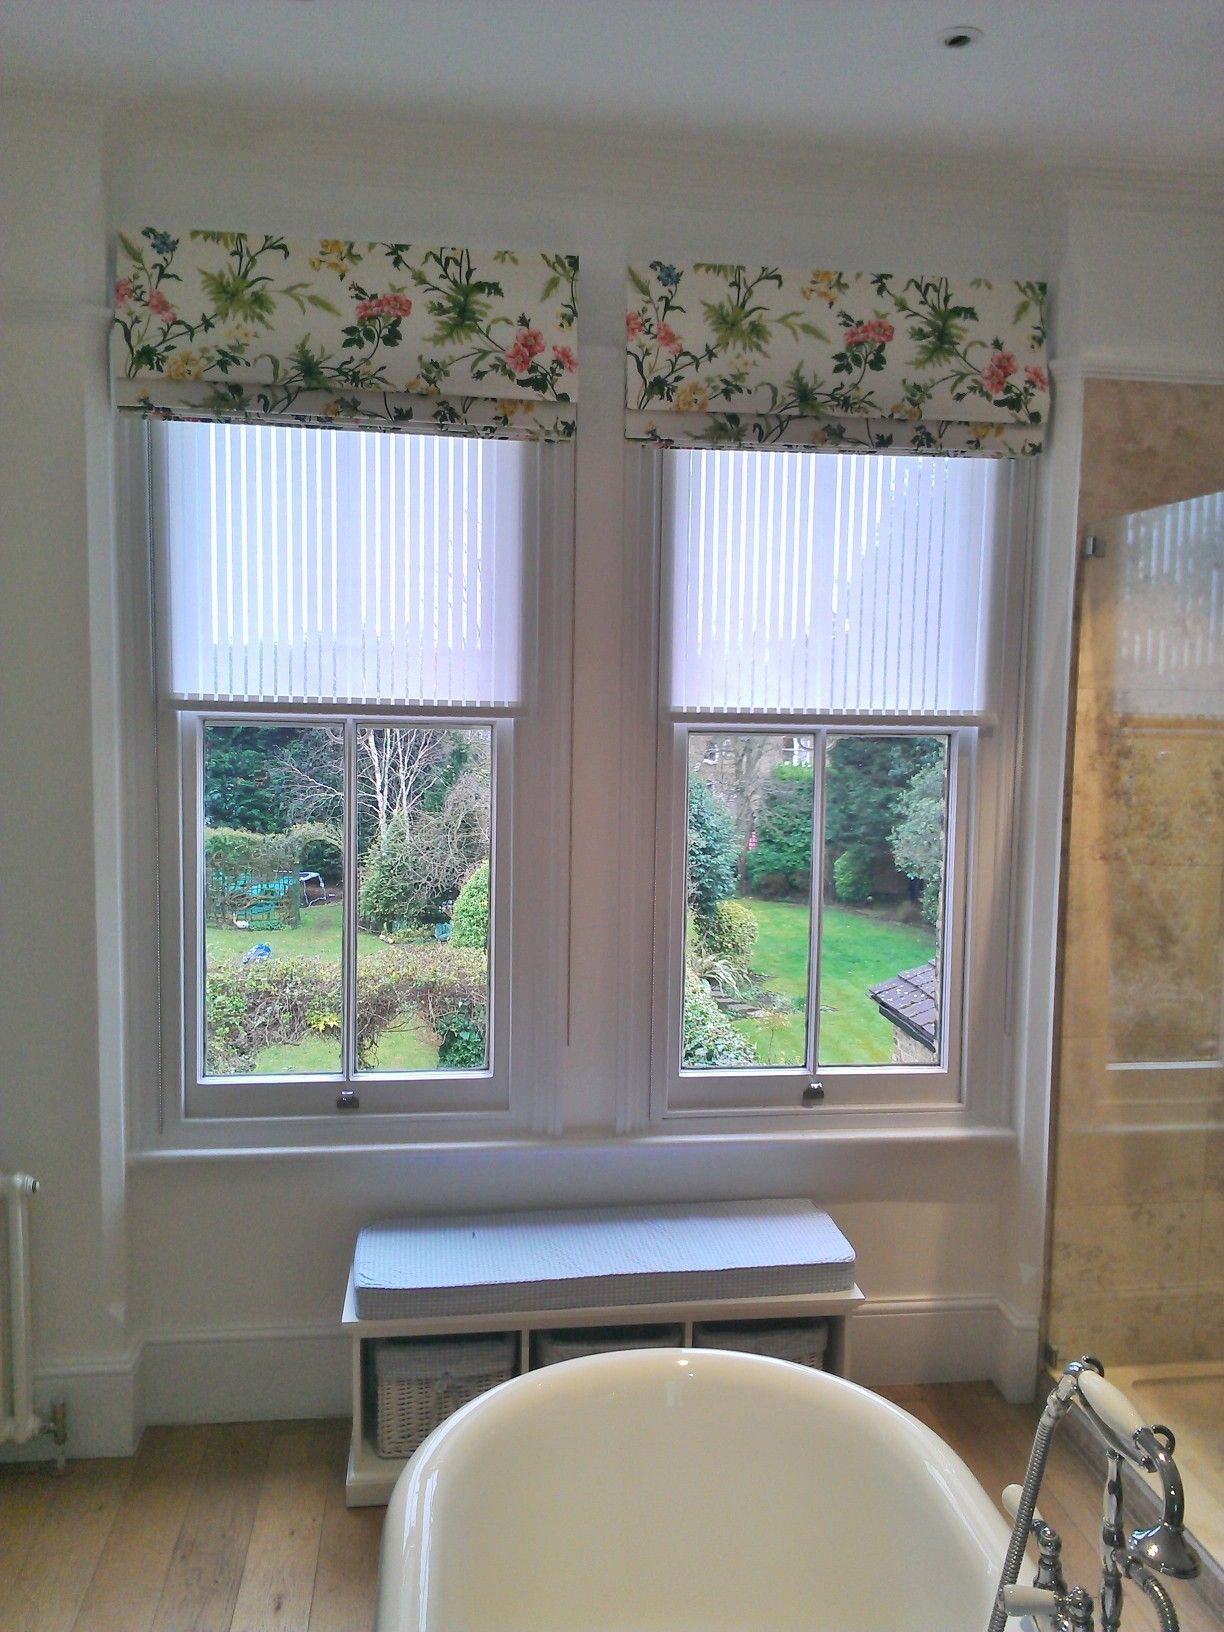 Romans and rollers blinds. Bathroom curtains or blinds   ideas   Pinterest   Bathroom blinds